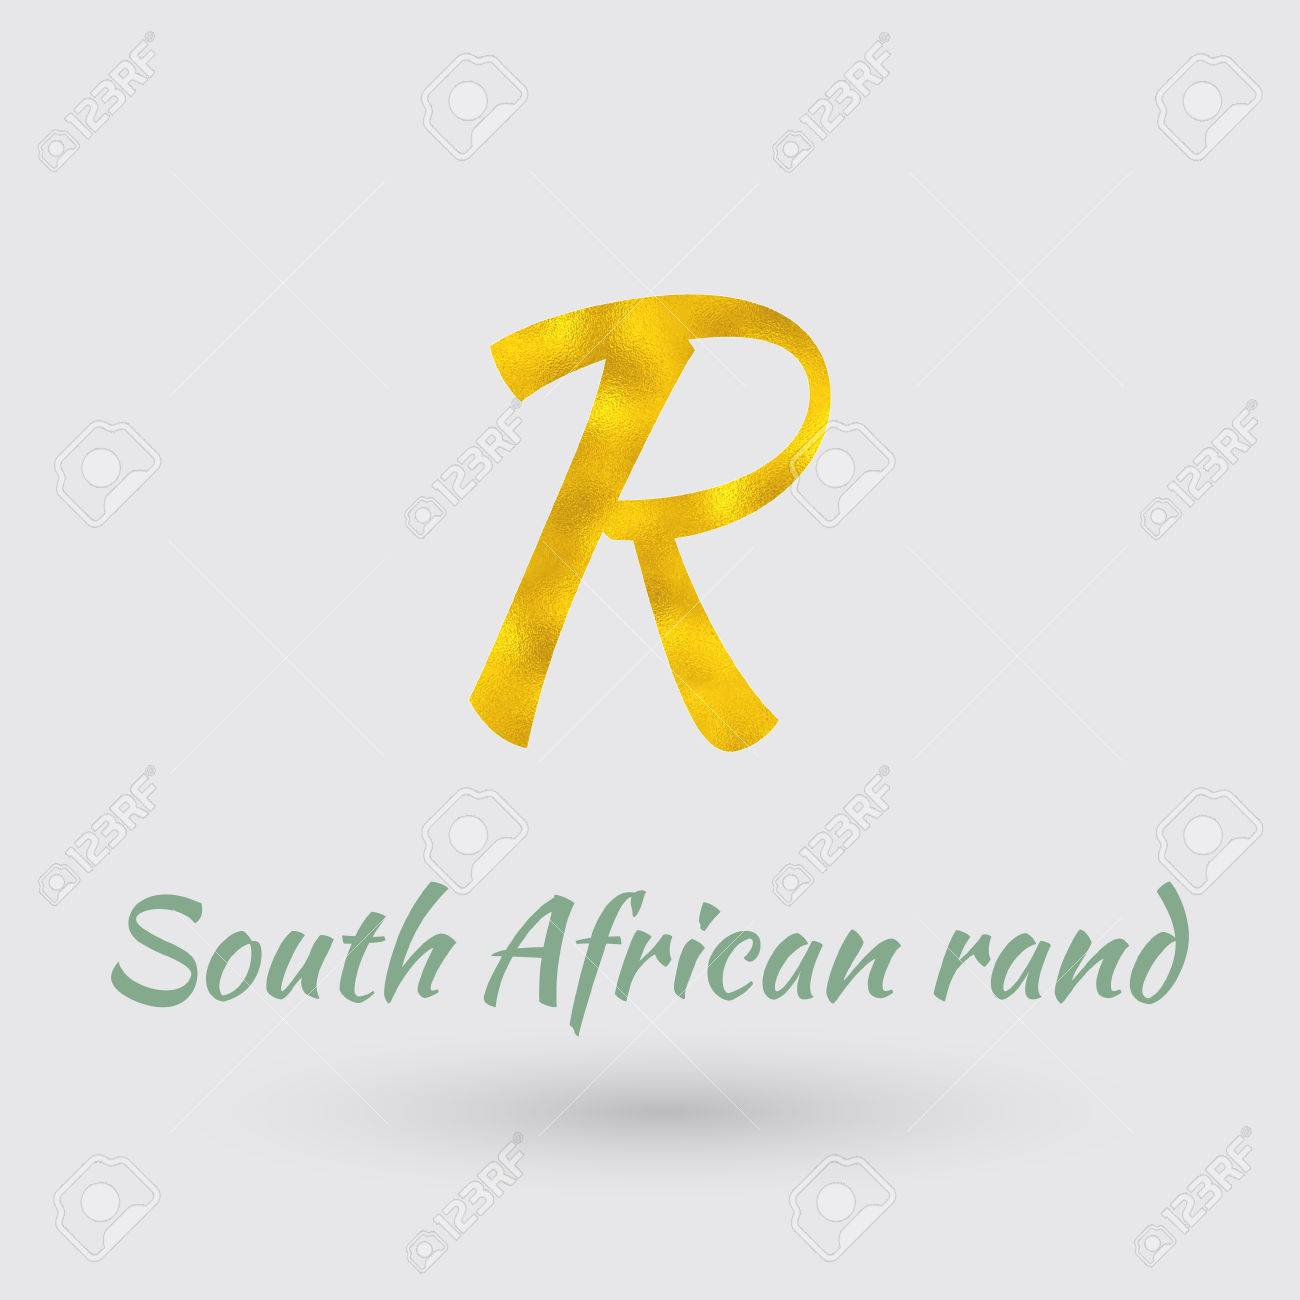 Symbol of the south african rand currency with golden texture symbol of the south african rand currency with golden texture stock vector 64293911 buycottarizona